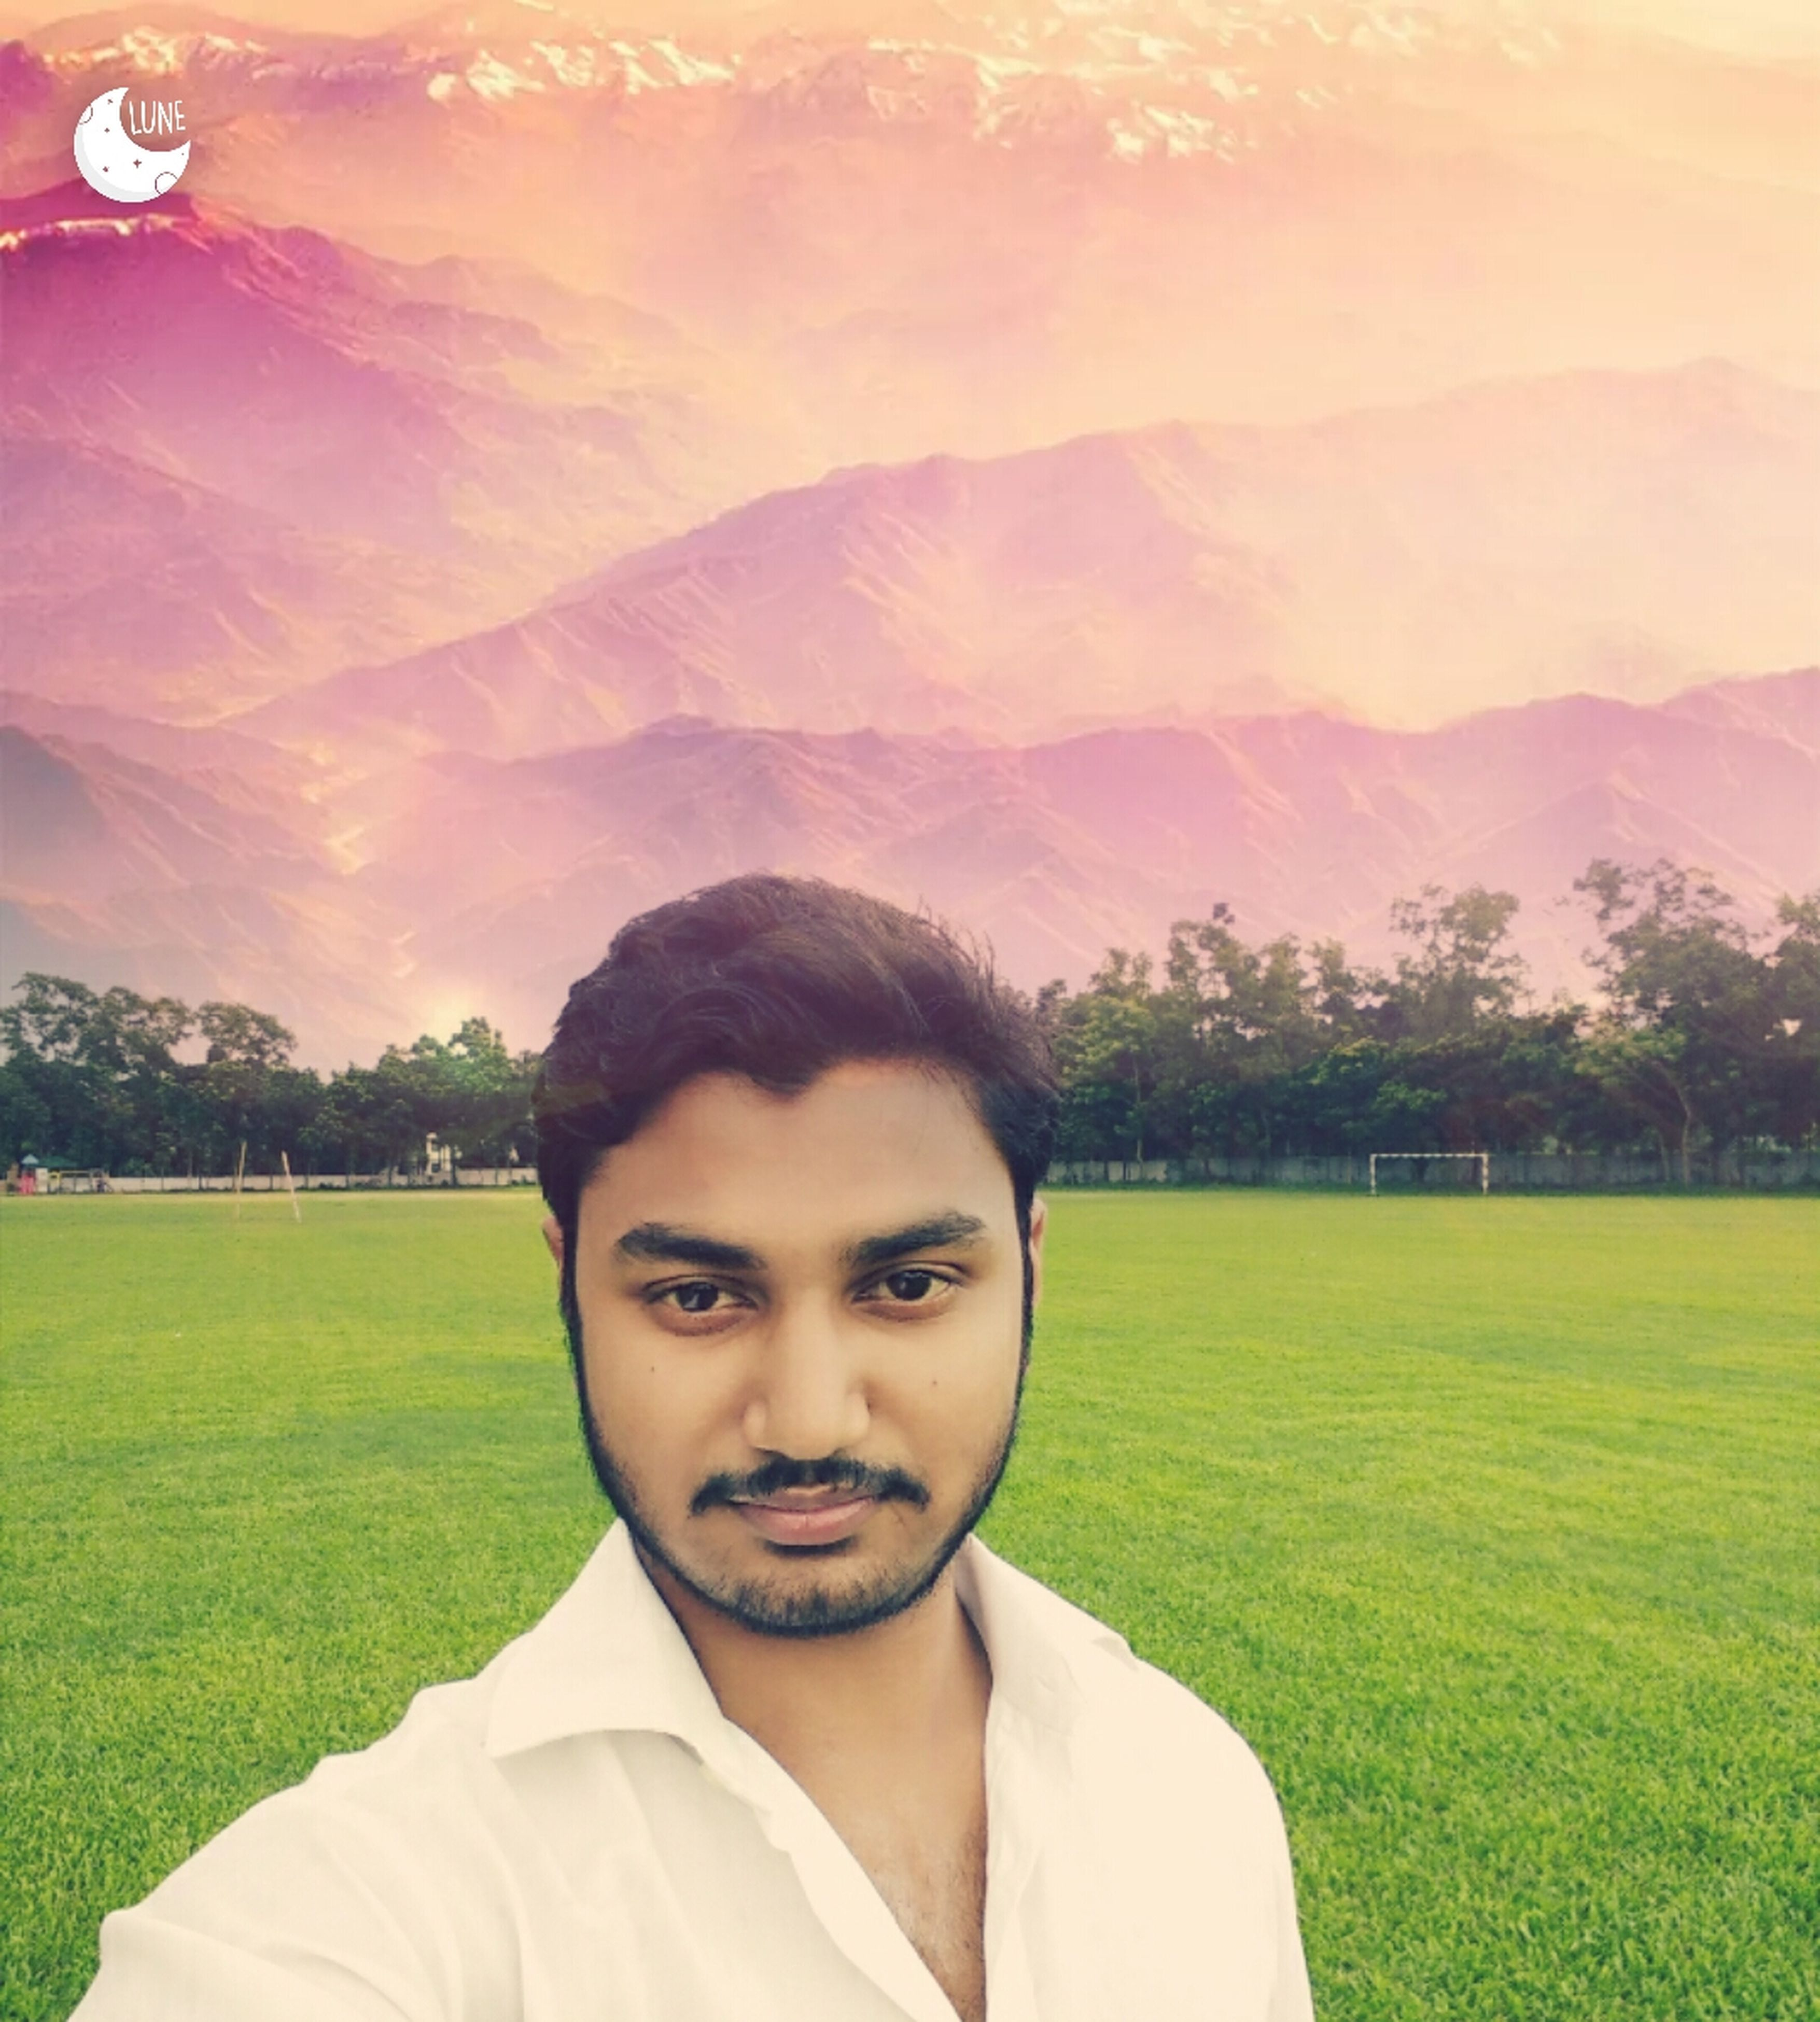 portrait, grass, lifestyles, leisure activity, headshot, field, mountain, casual clothing, green color, landscape, nature, sky, grassy, day, outdoors, beauty in nature, focus on foreground, toothy smile, tranquility, lawn